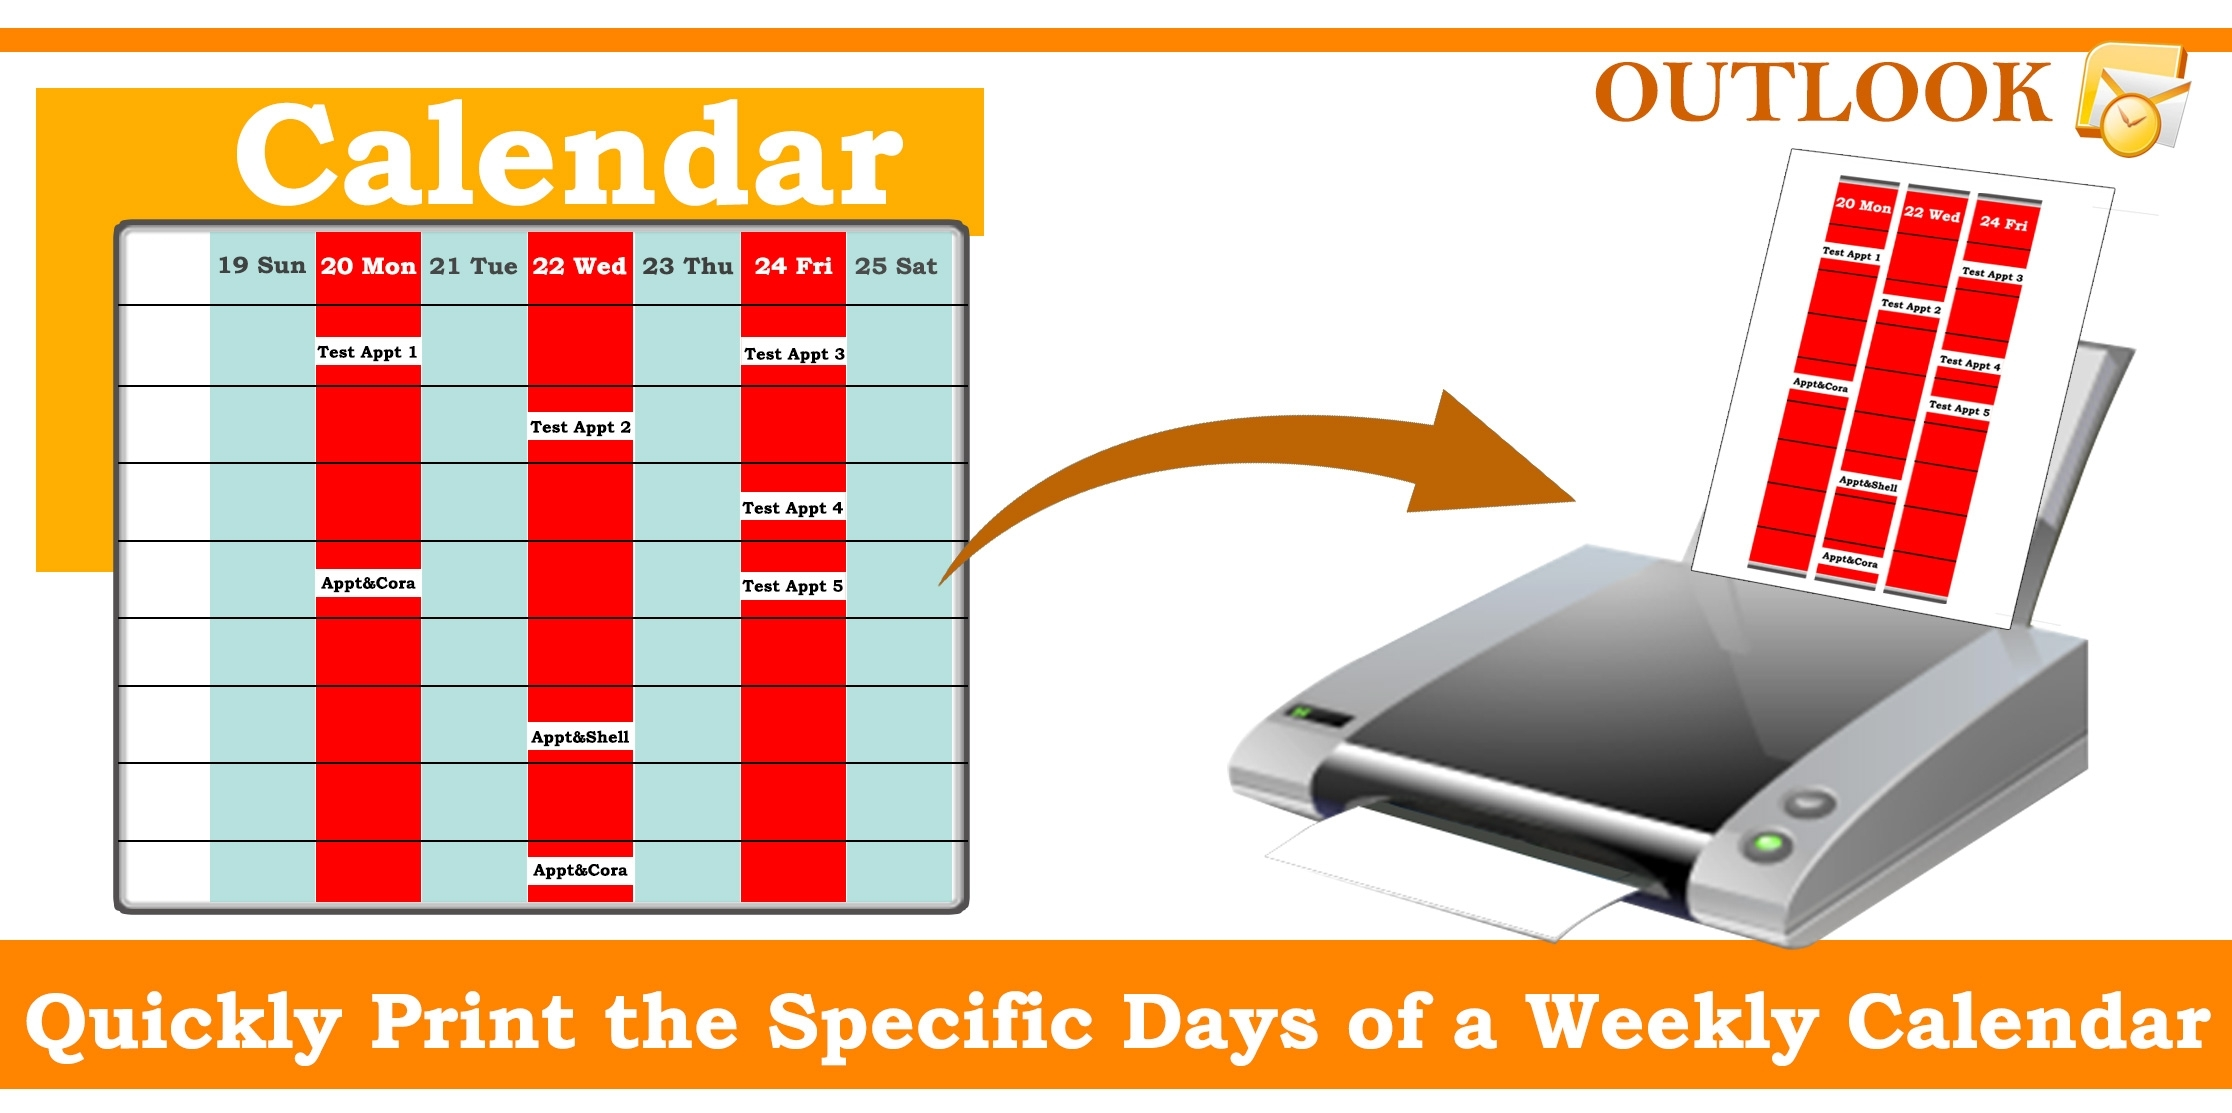 How To Quickly Print The Specific Days Of A Weekly Calendar In Your